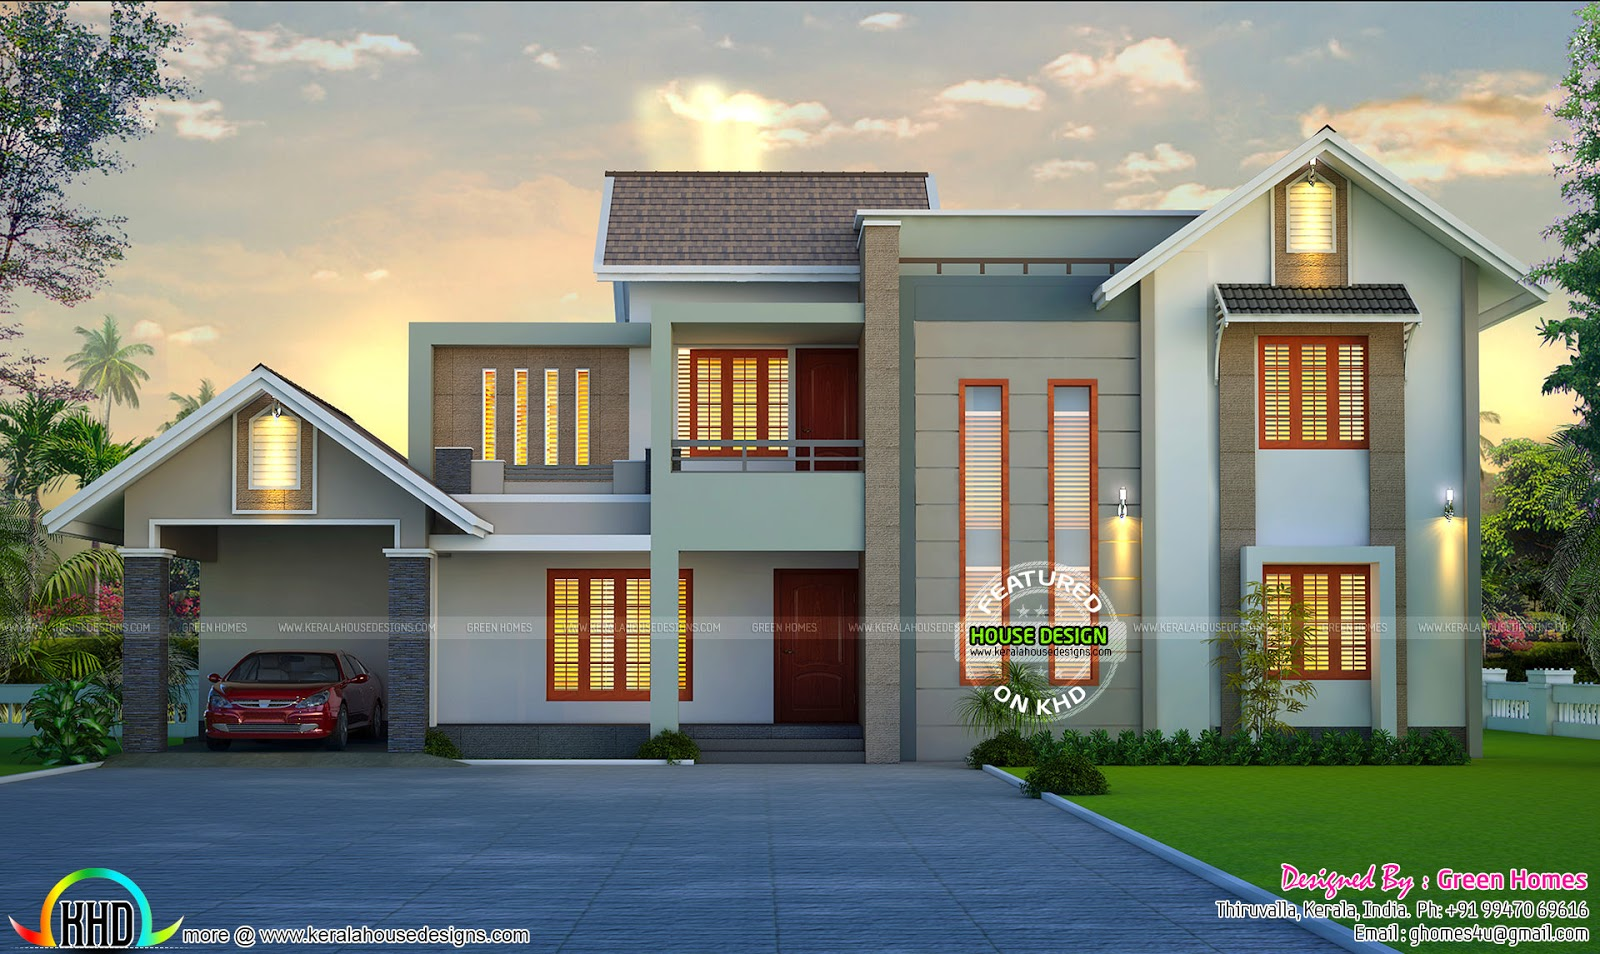 Beautiful home design by green homes thiruvalla kerala for Beautiful house design